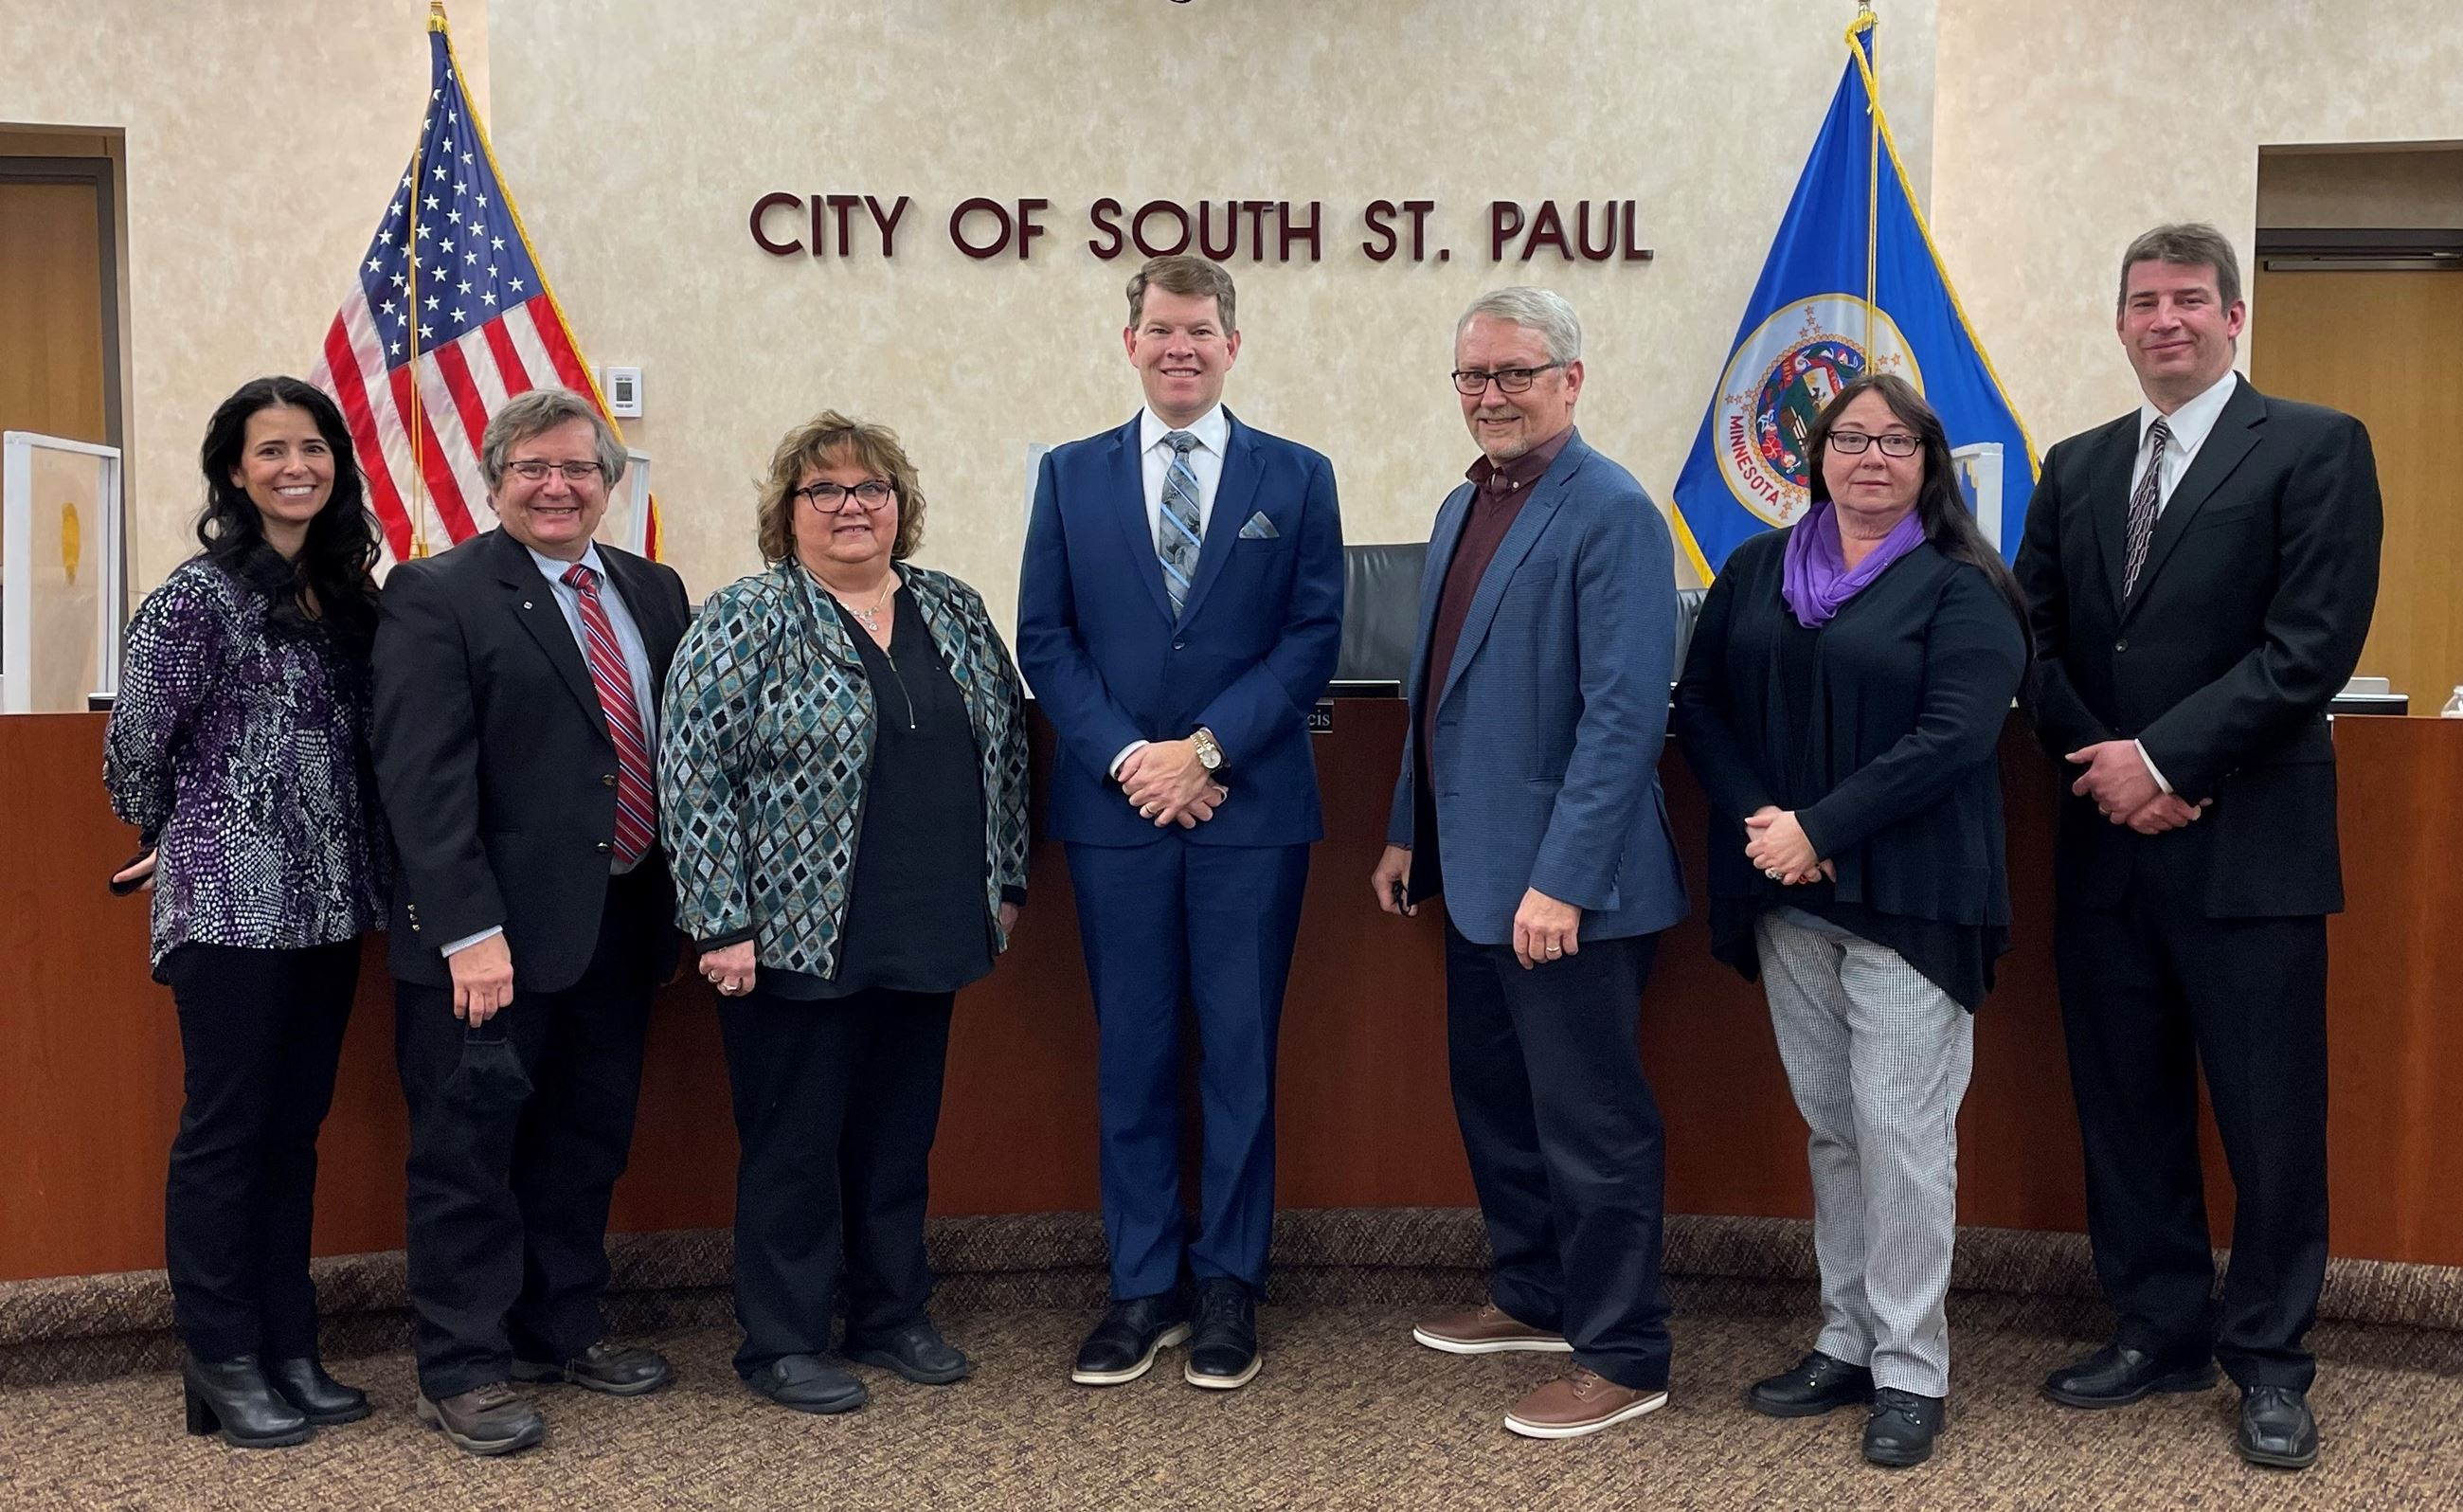 Image of the 2021 South St. Paul City Council Members